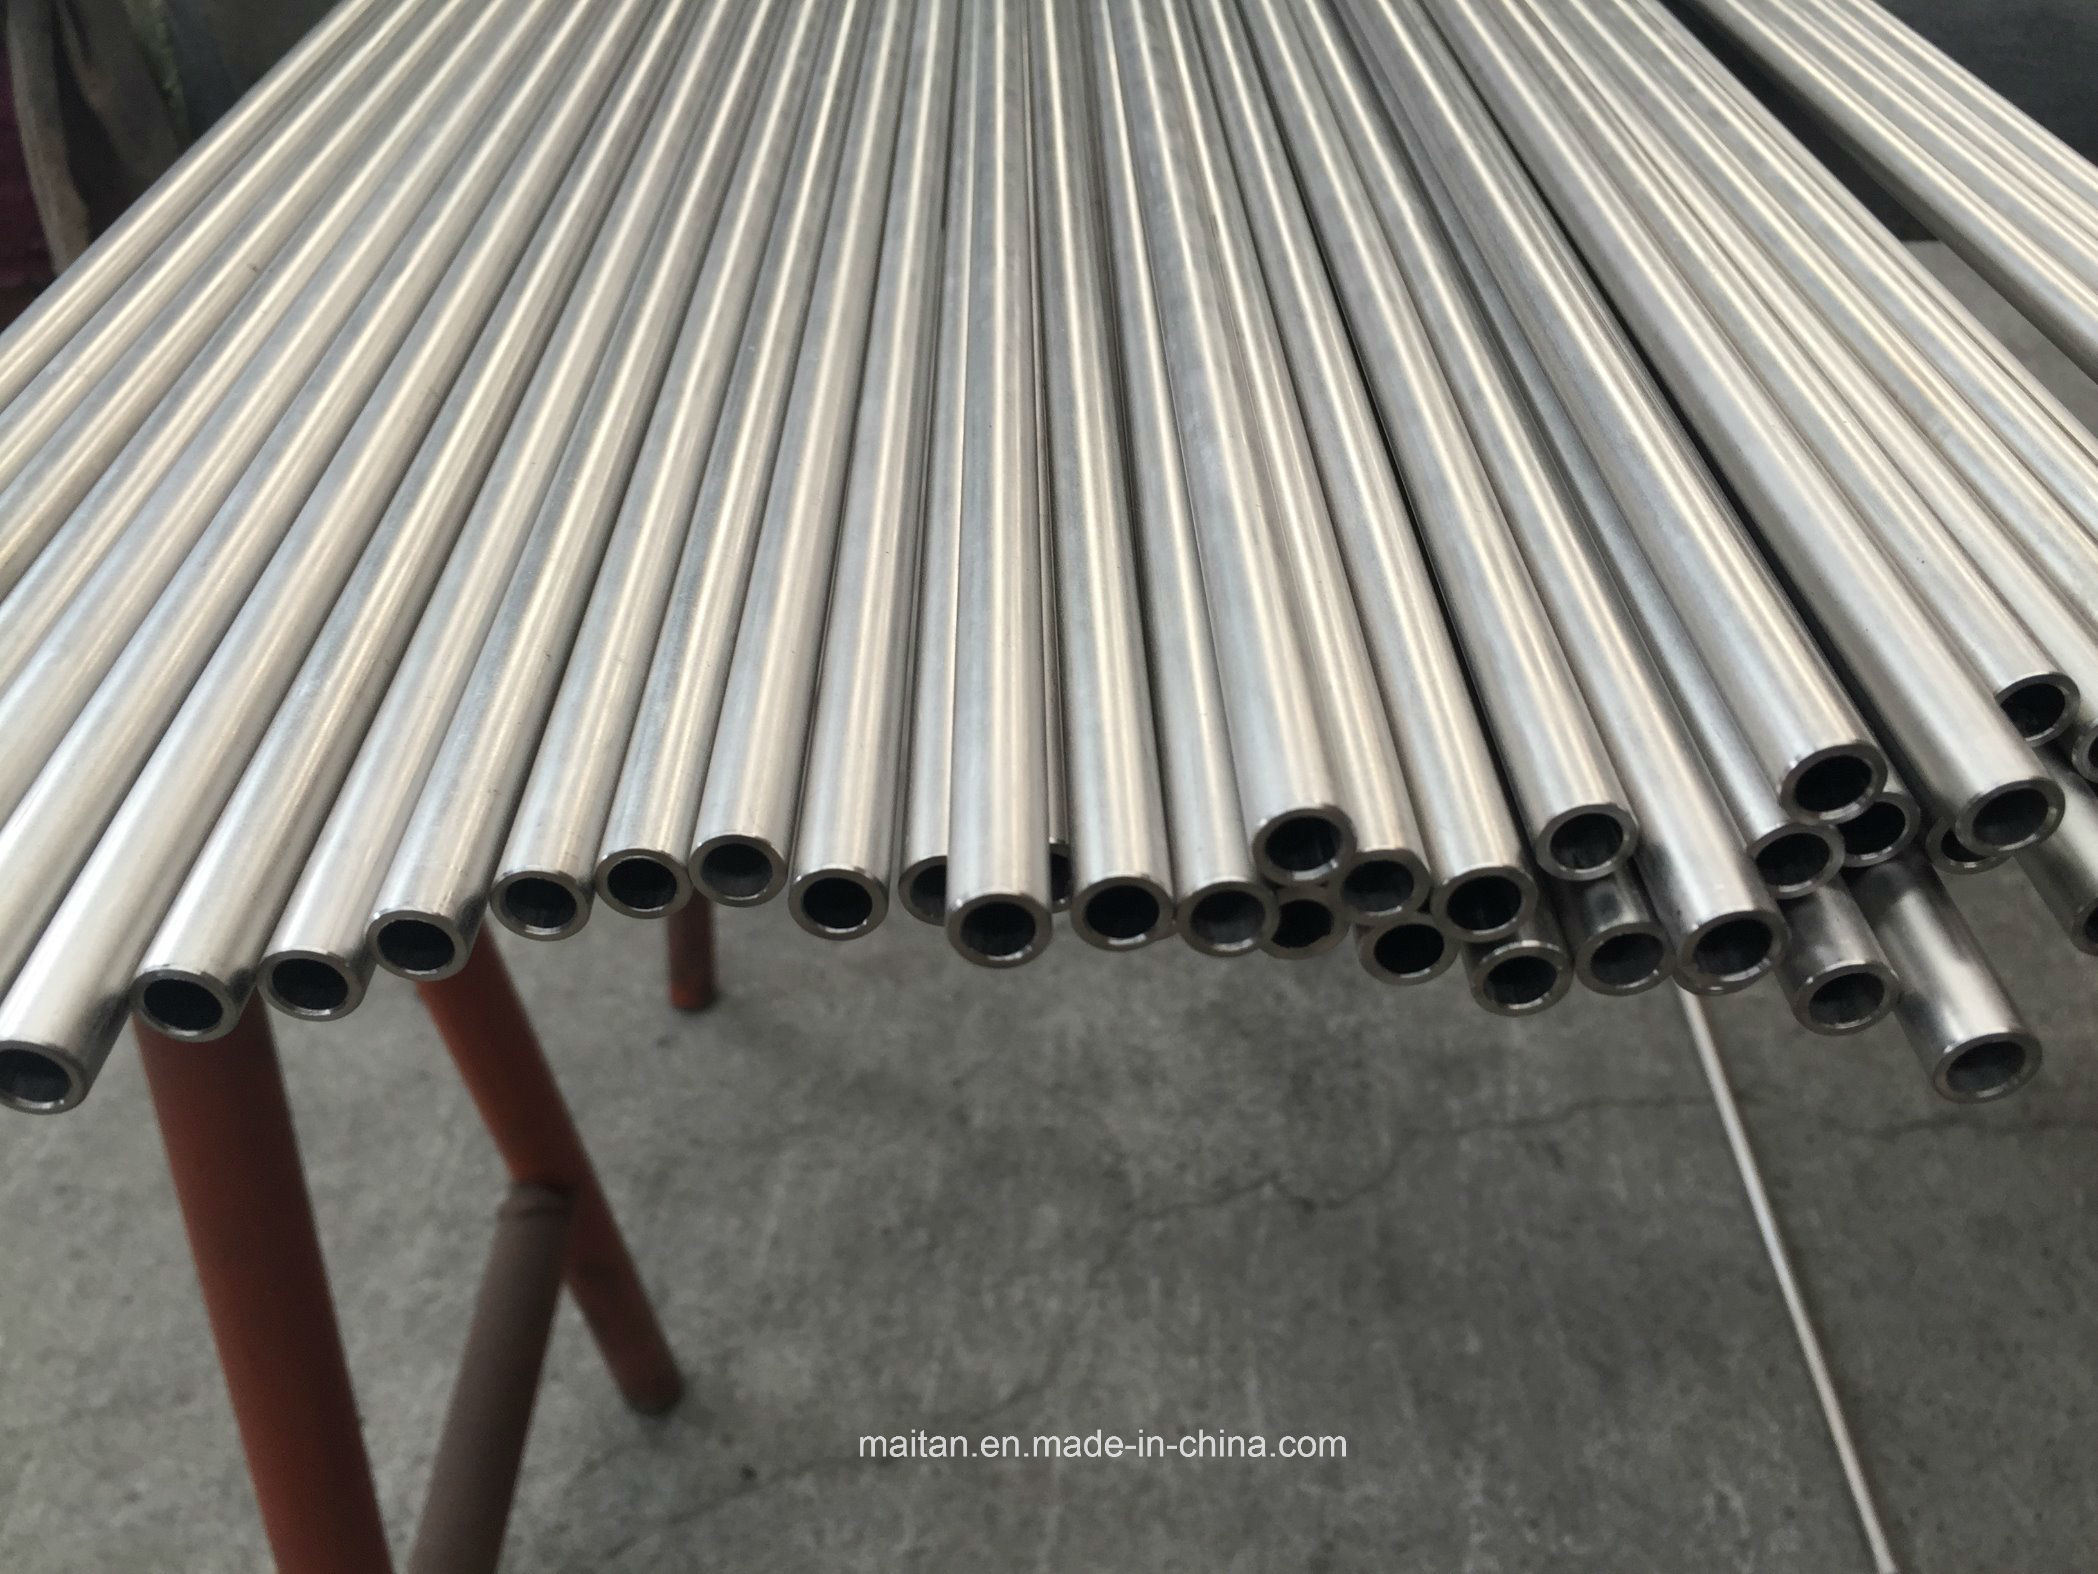 Tongji Engineering ASME Sb338 Gr 2 Od 10 X Wt 1.5mm Seamless Titanium Tube pictures & photos